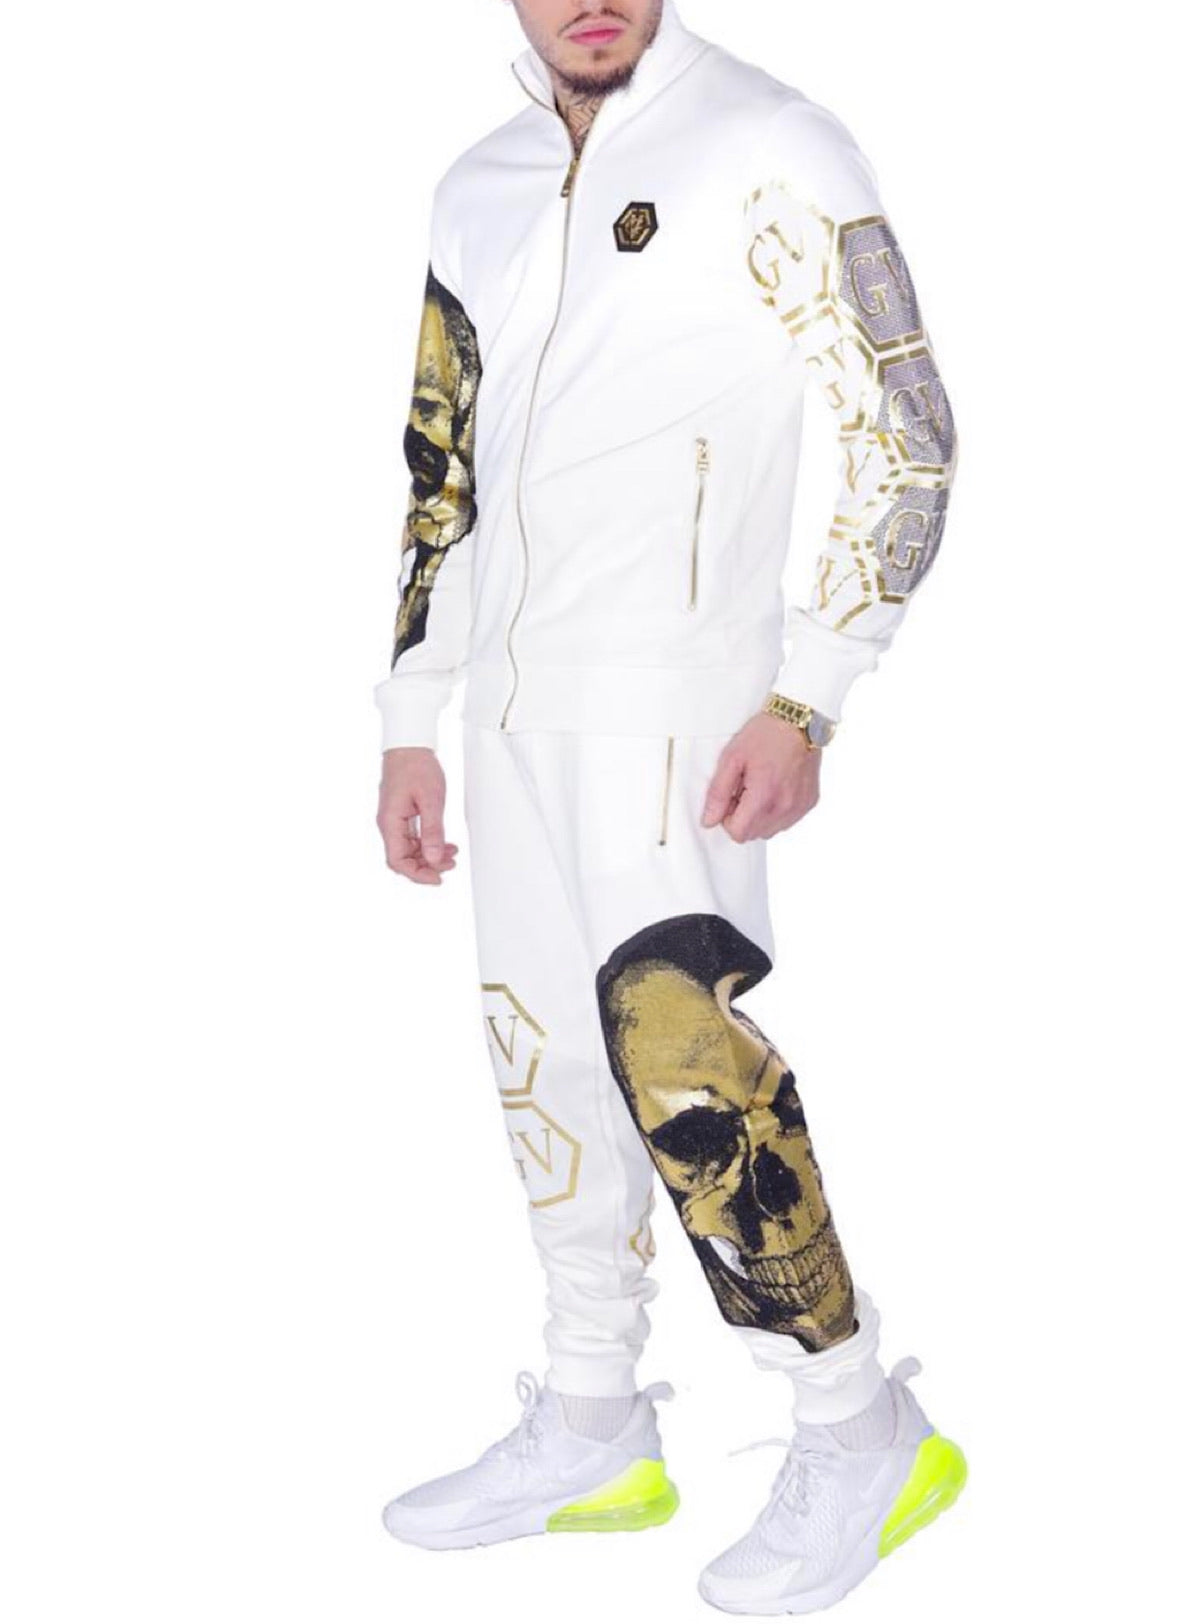 George V Sweatsuit - Skull And Cubes - White And Gold - GV1021